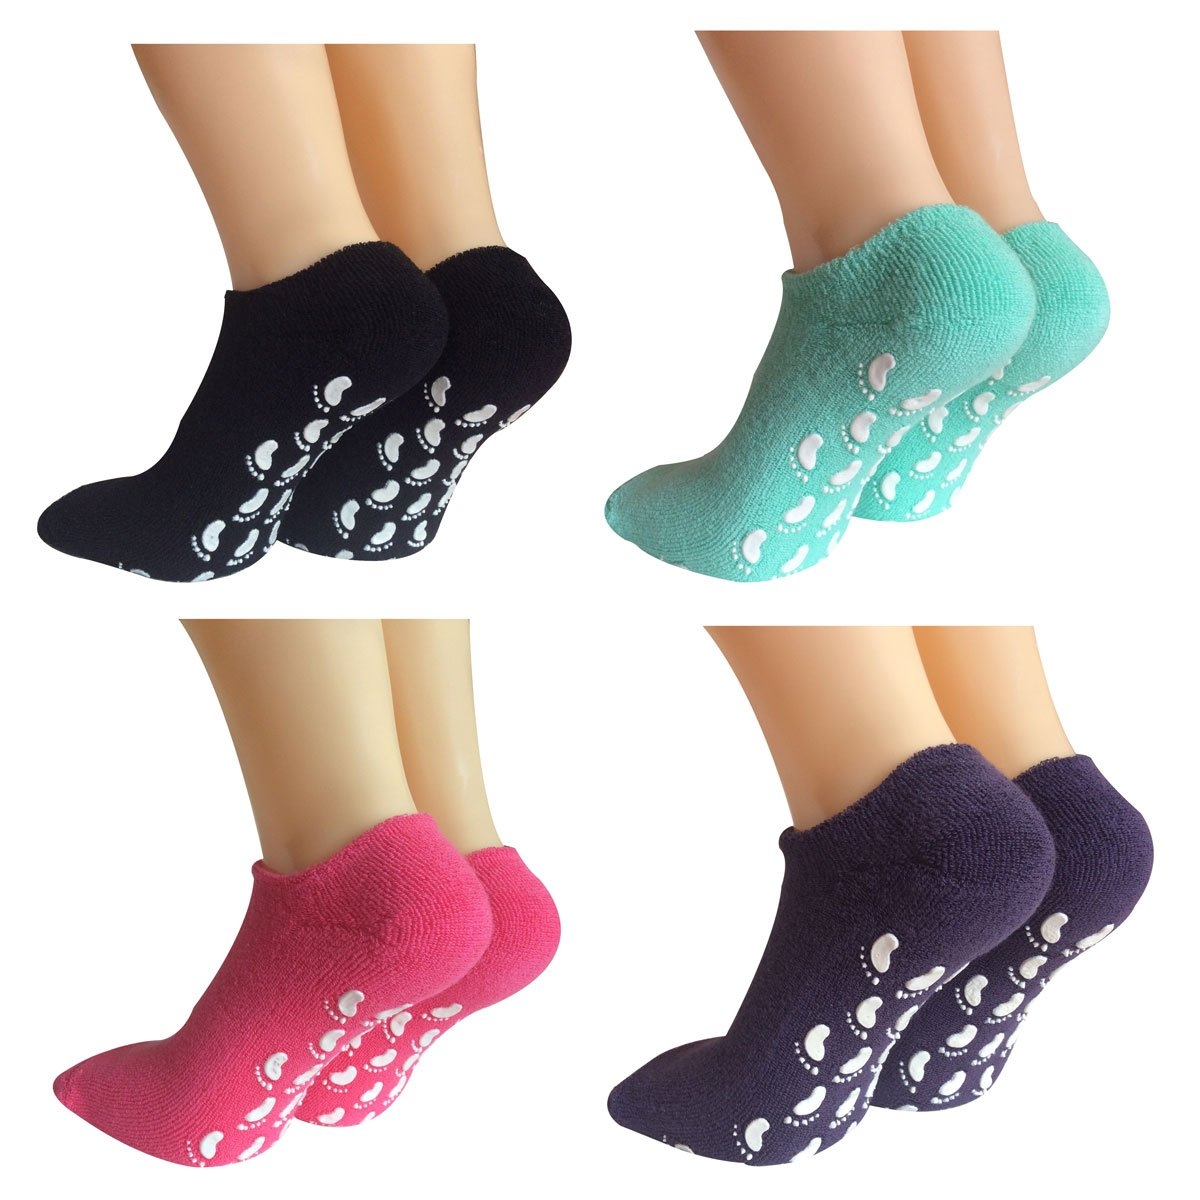 Lantee Non Slip Casual Floor Hospital Socks with Grips Cotton for Women Pack of 4